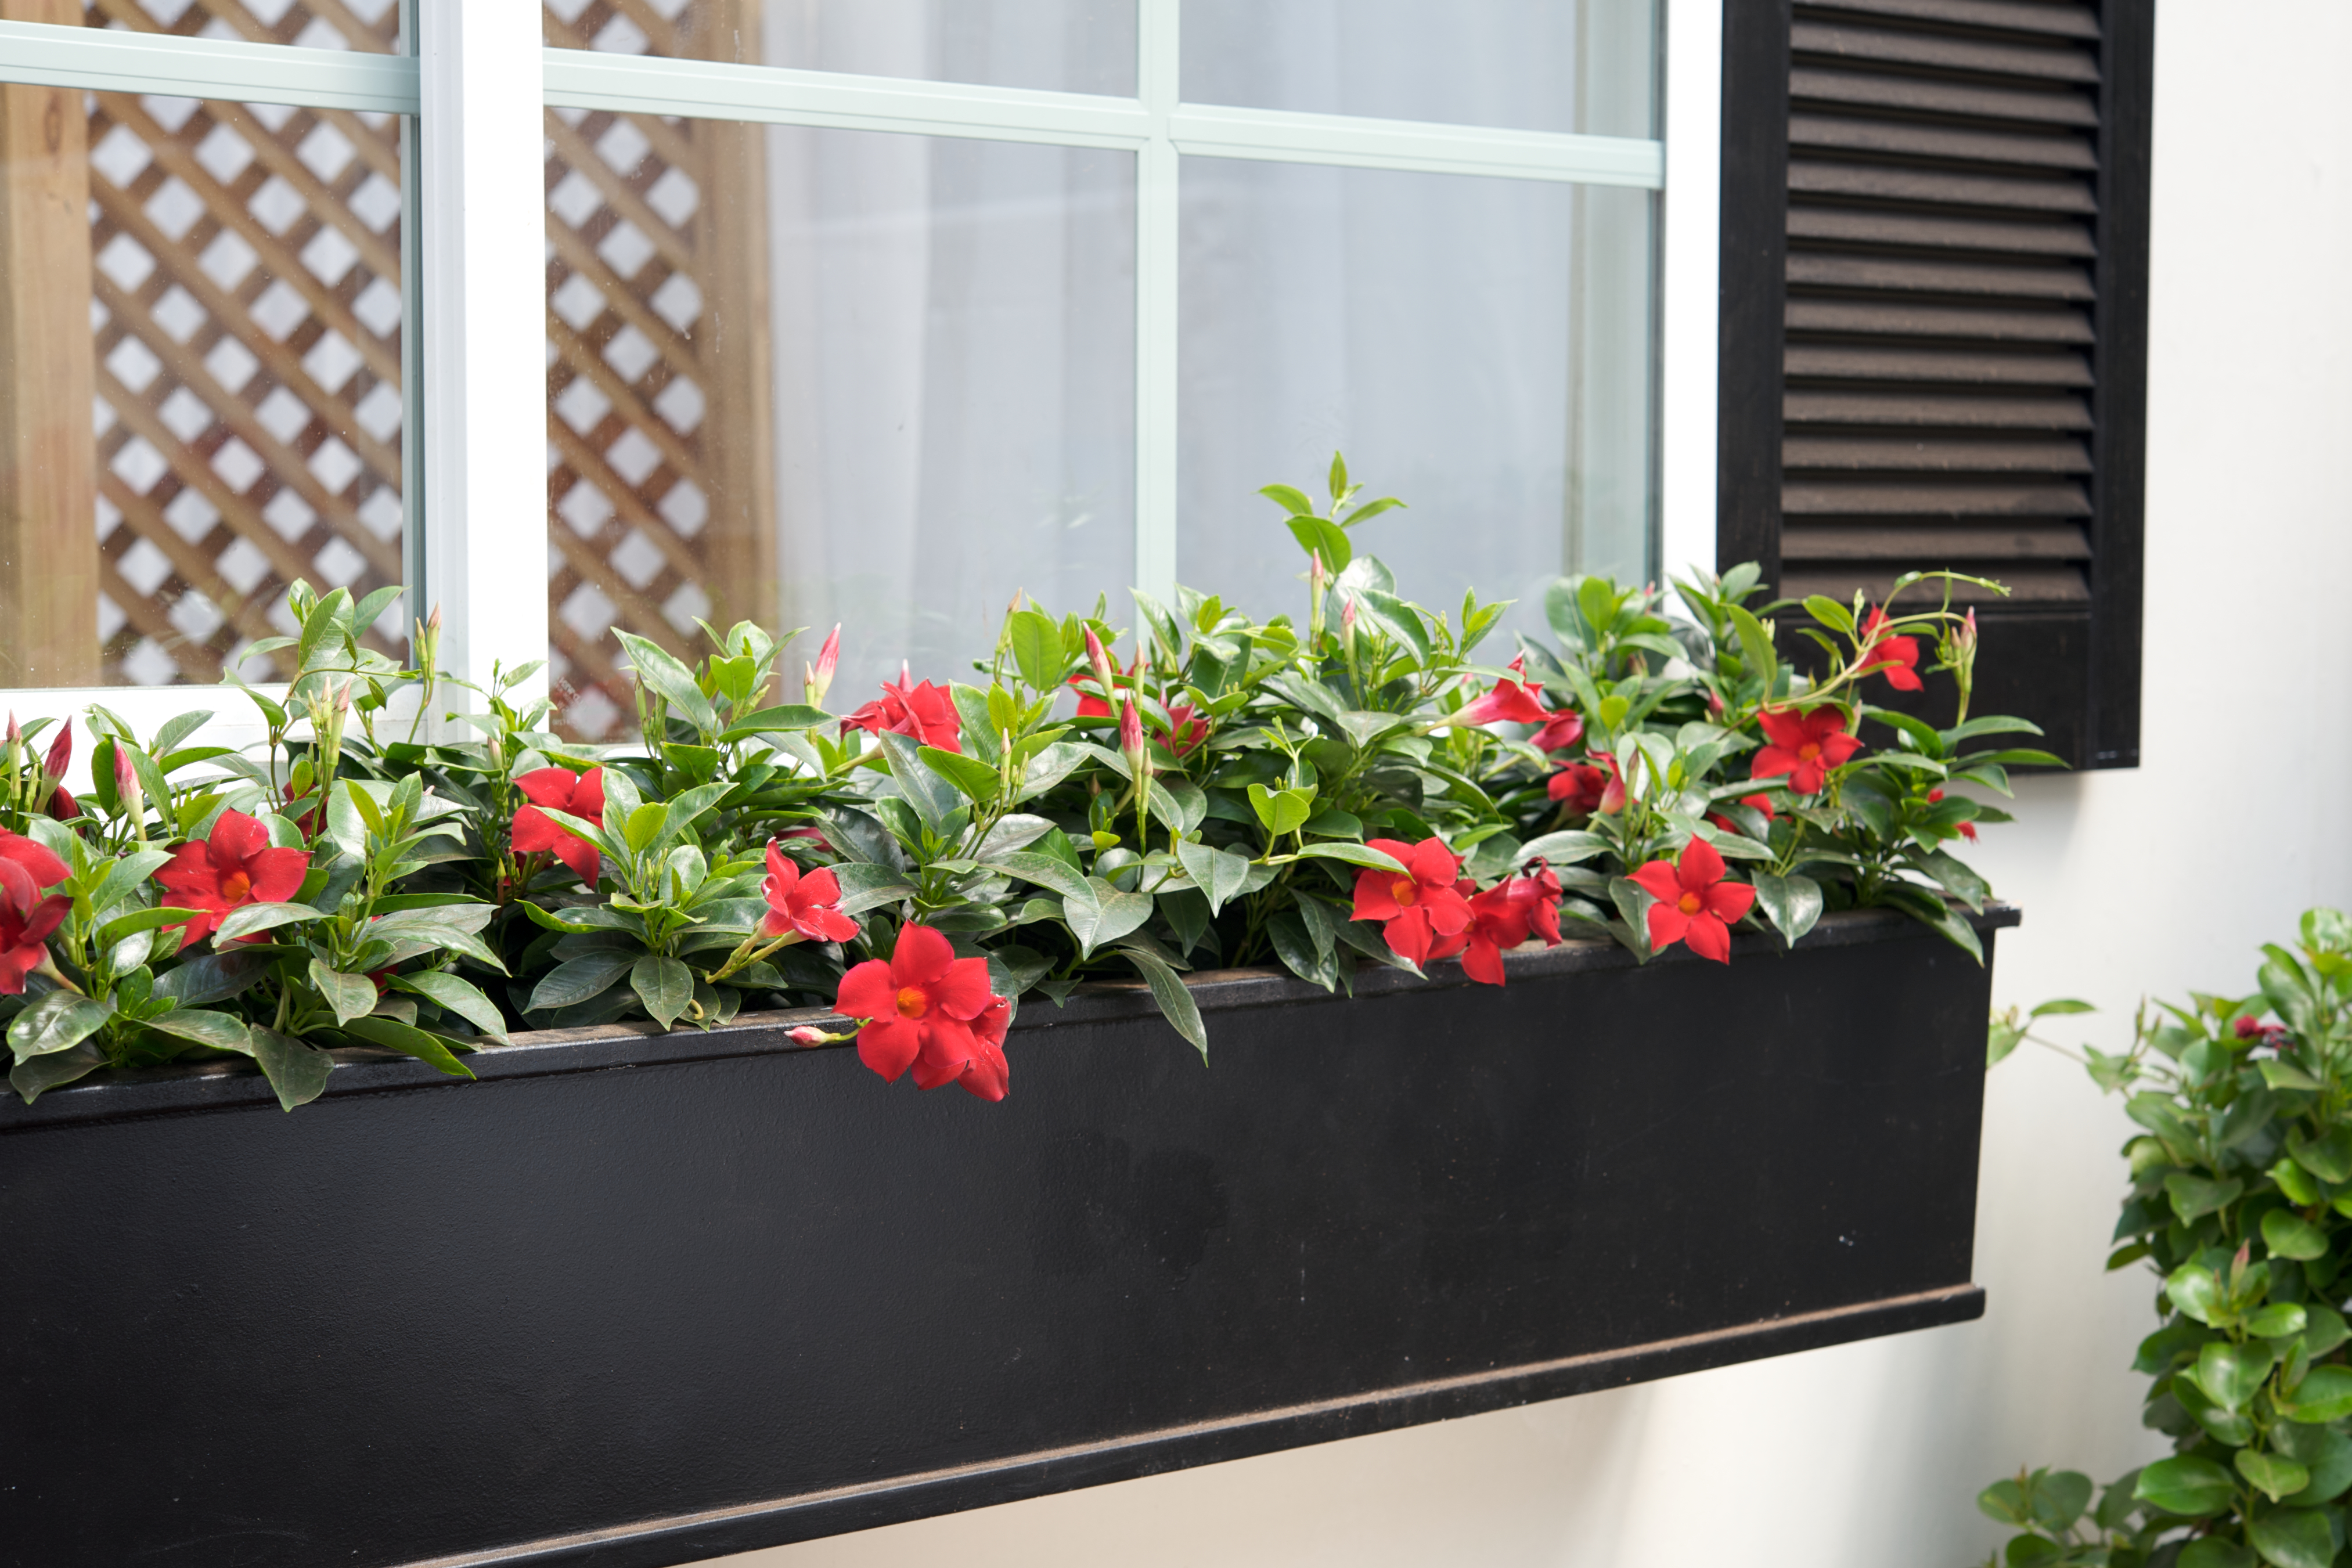 Sun Parasol Garden Crimson mandevilla complimenting black window box planter.